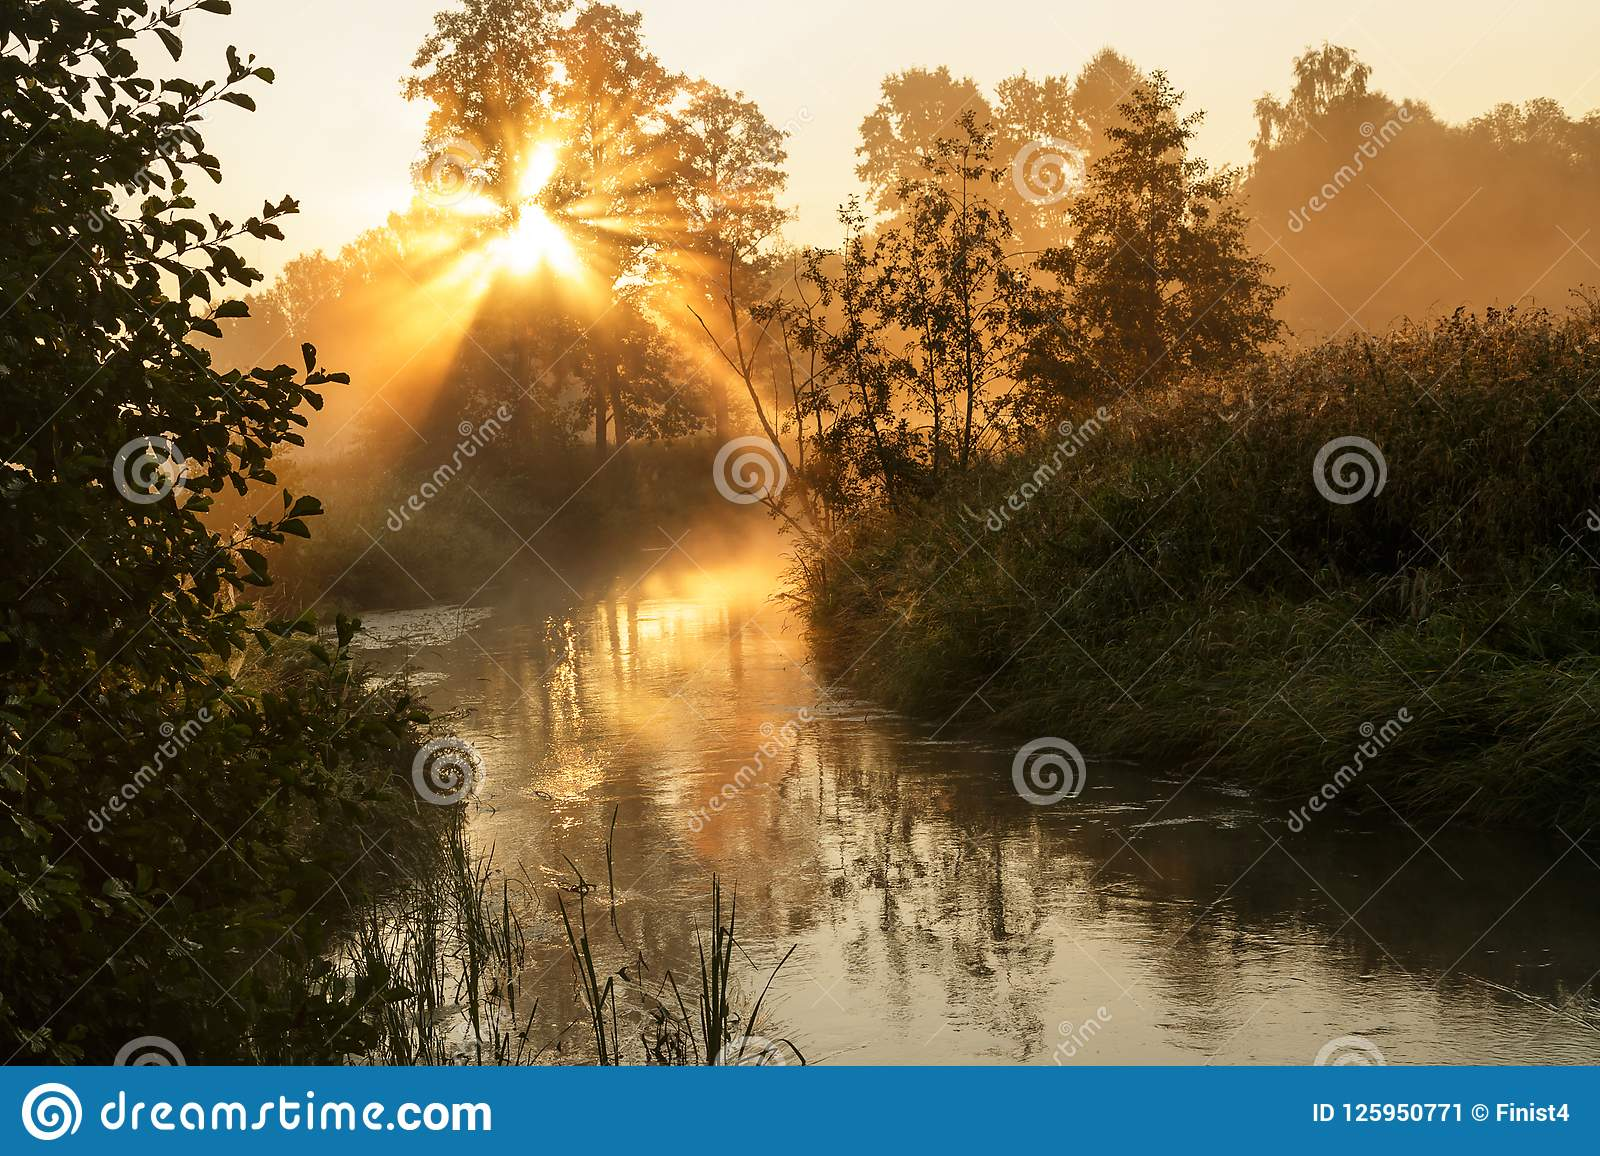 Fog over the river with the rising sun.